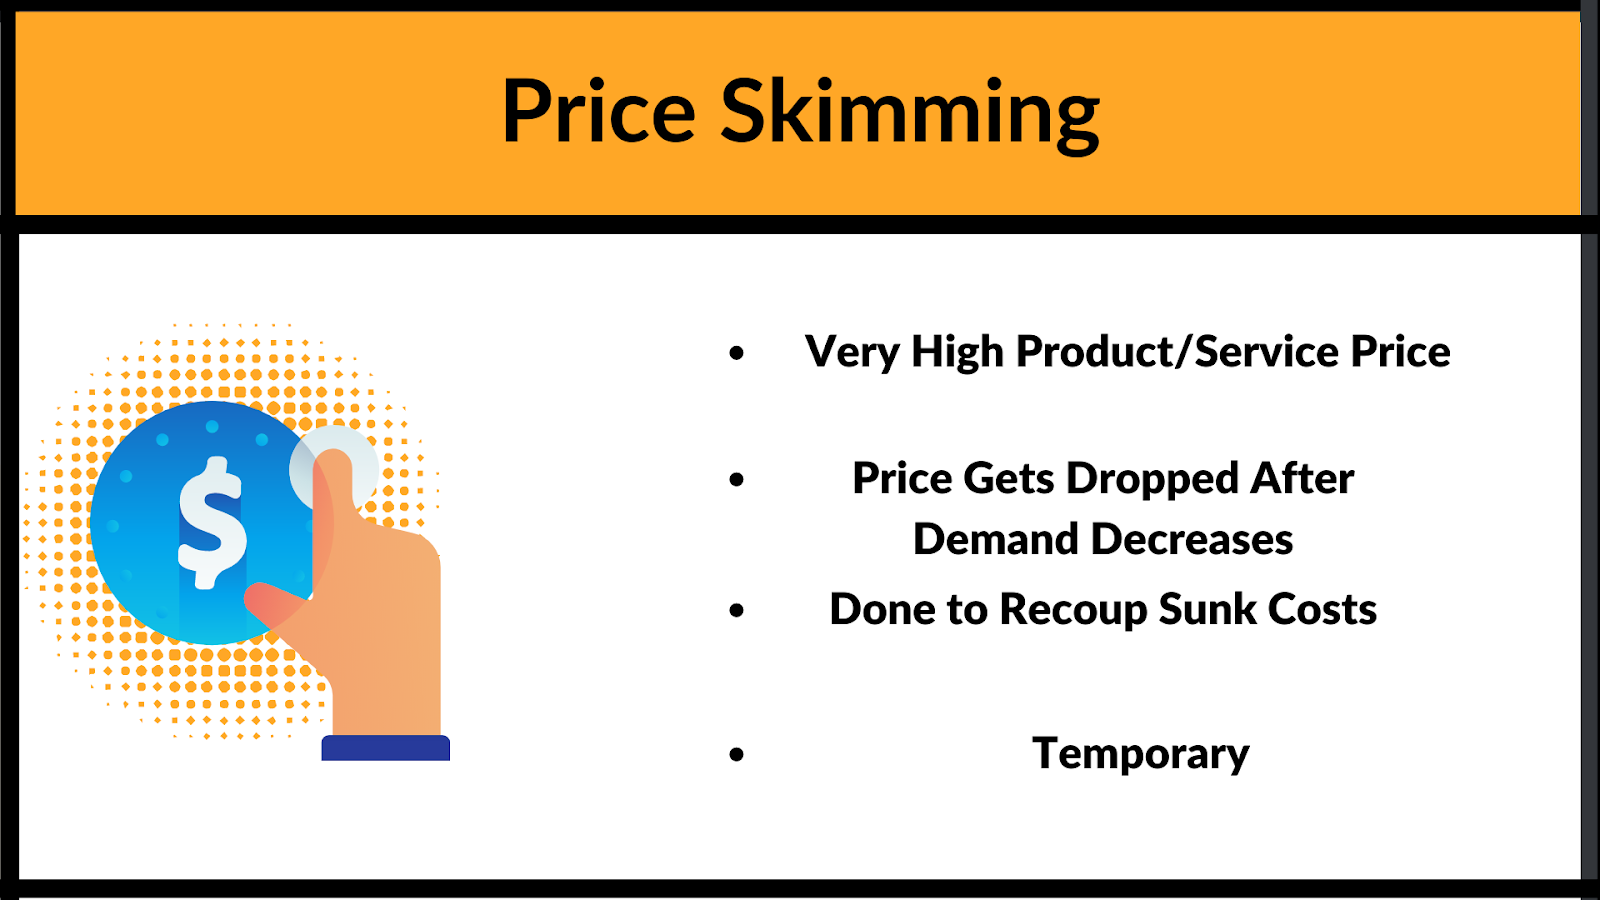 What are the characteristics of price skimming